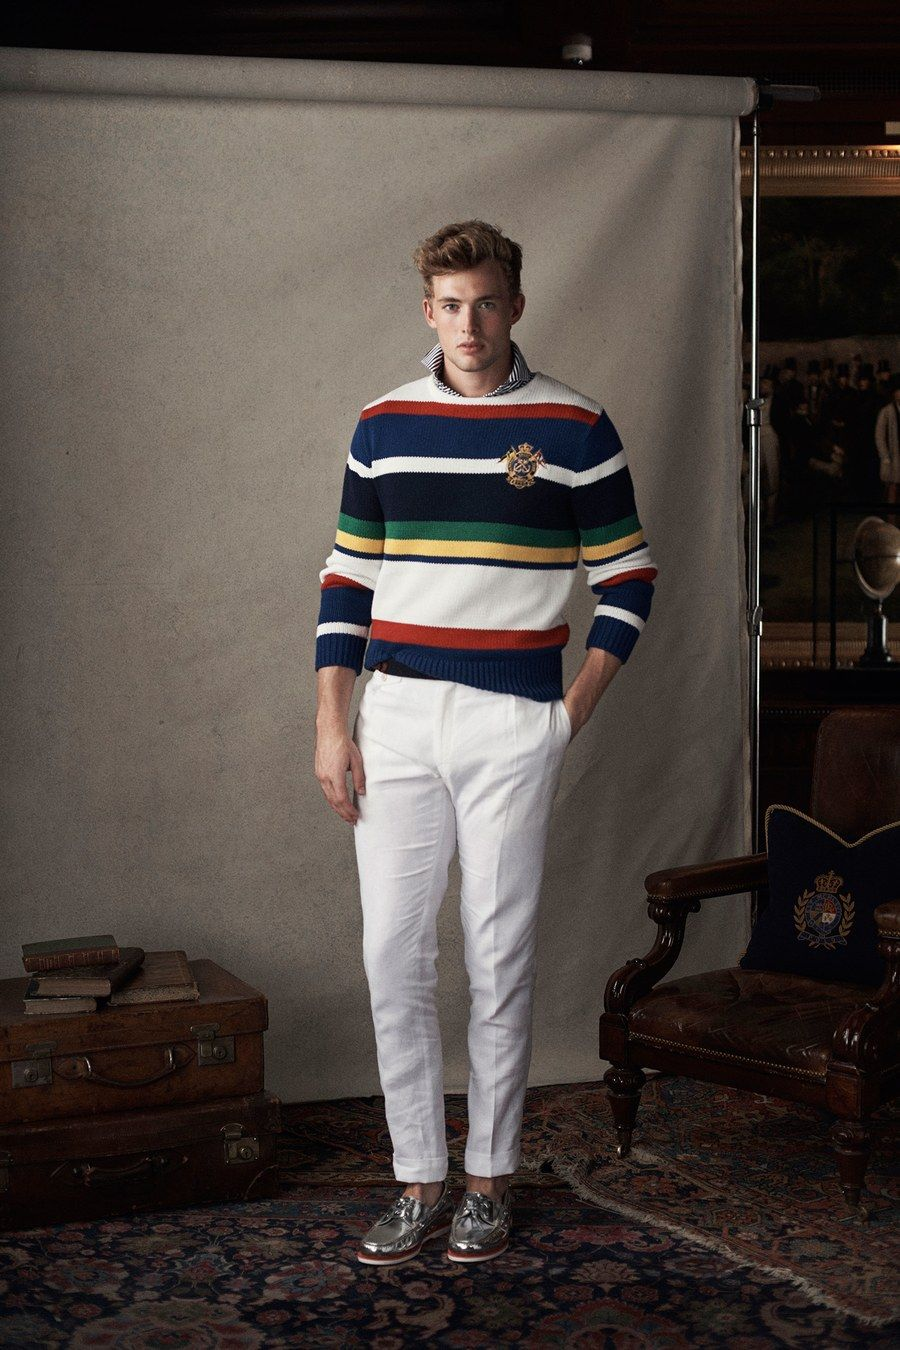 ... fashion game. Polo Ralph Lauren Spring 2019 Menswear collection bf41d8f93340e